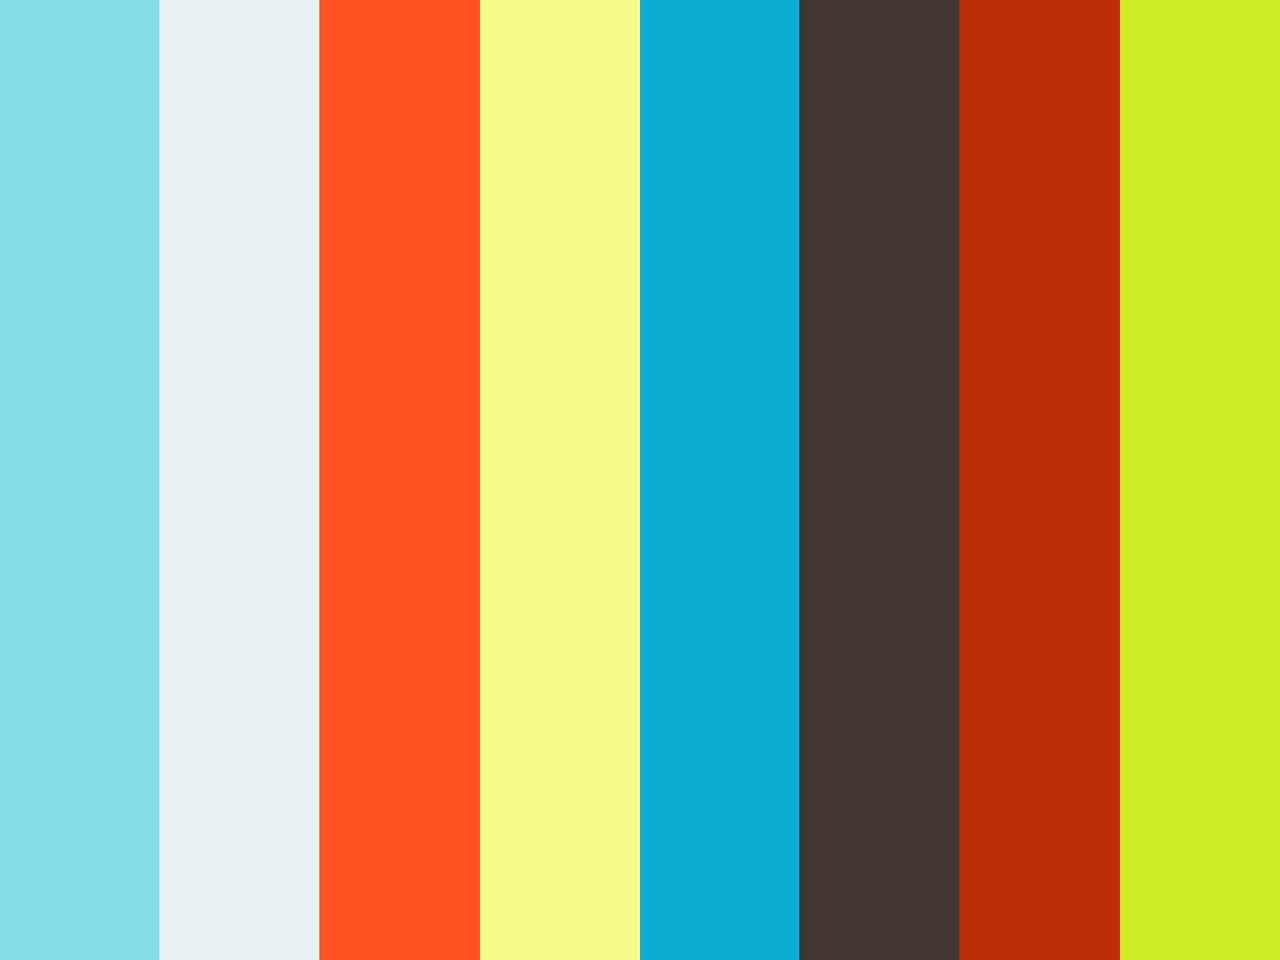 Healthcare Reform Series - Webinar 2